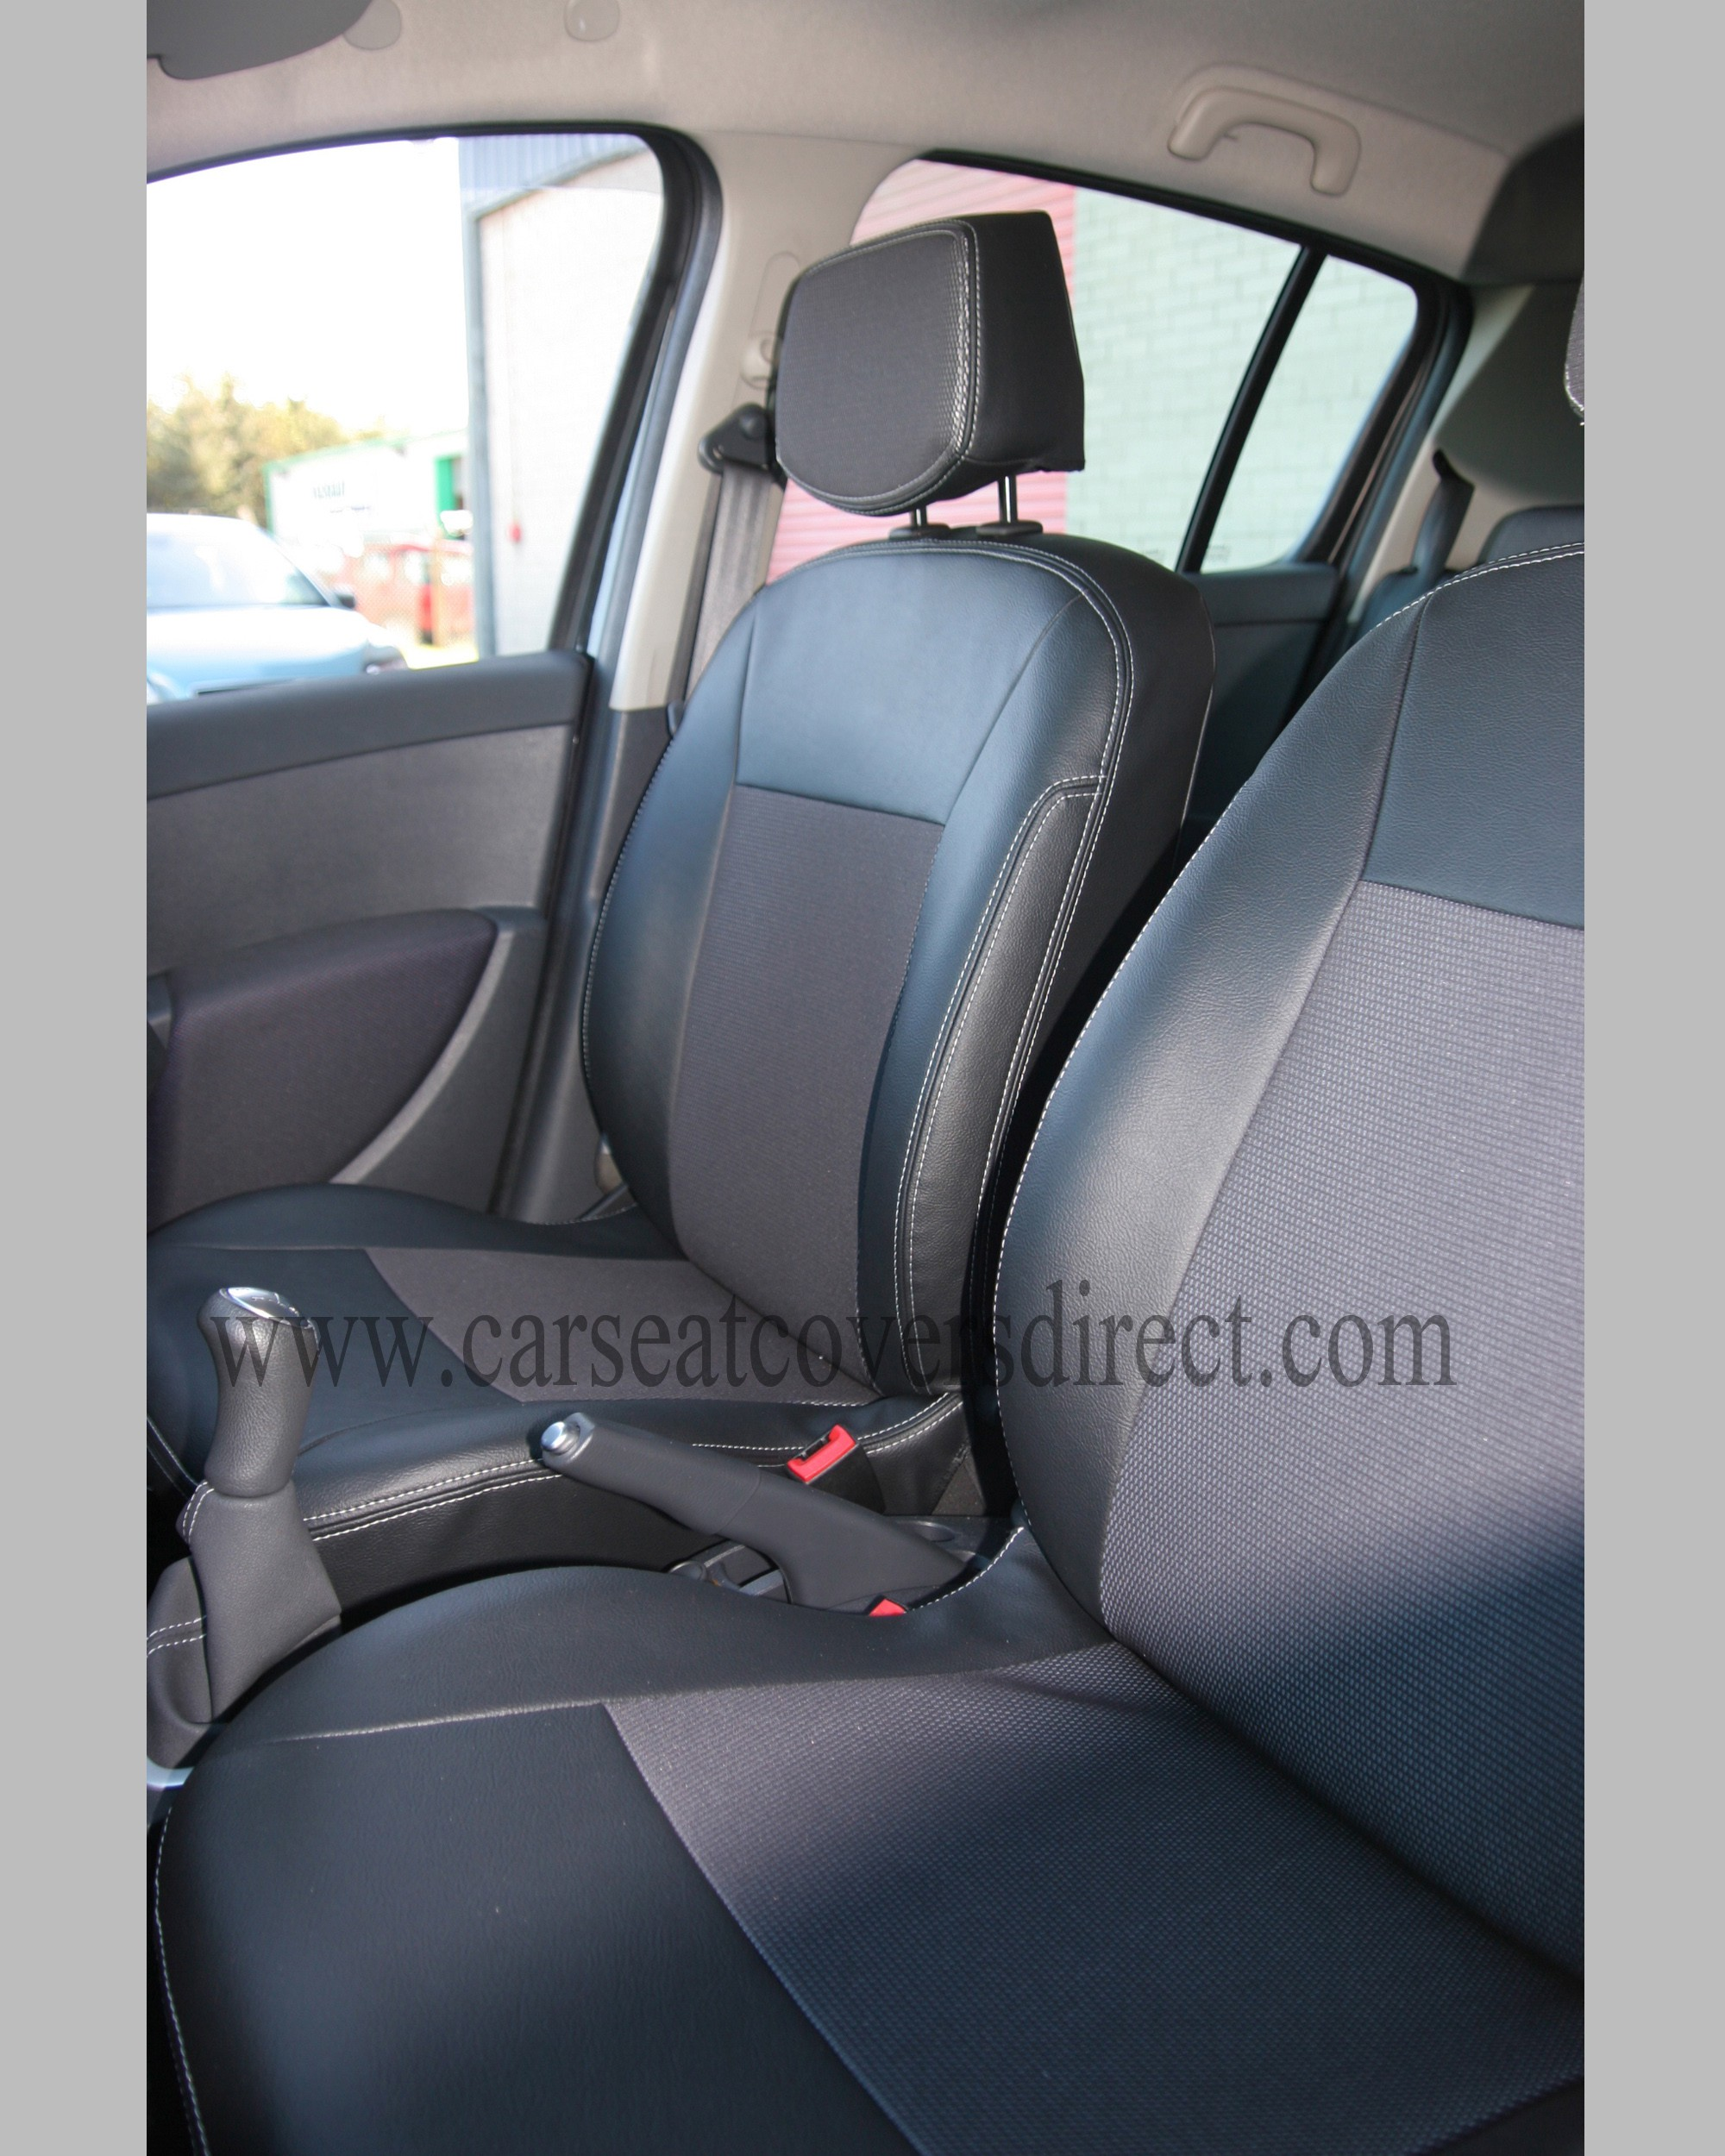 Renault Clio Seat Covers